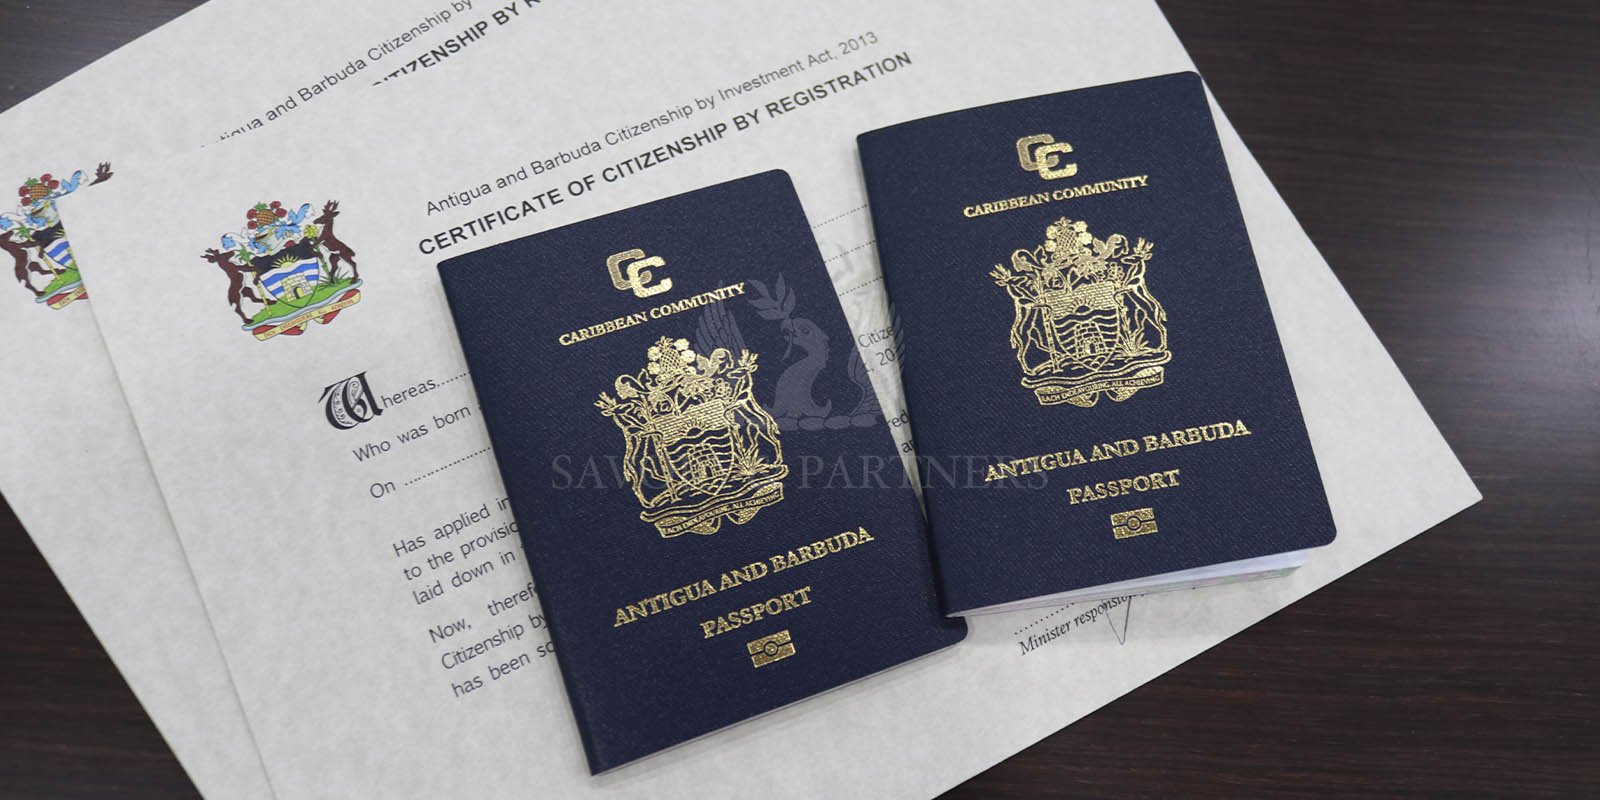 The Government of Antigua & Barbuda is the first Caribbean country to start processing Citizenship applications from stateless applicants